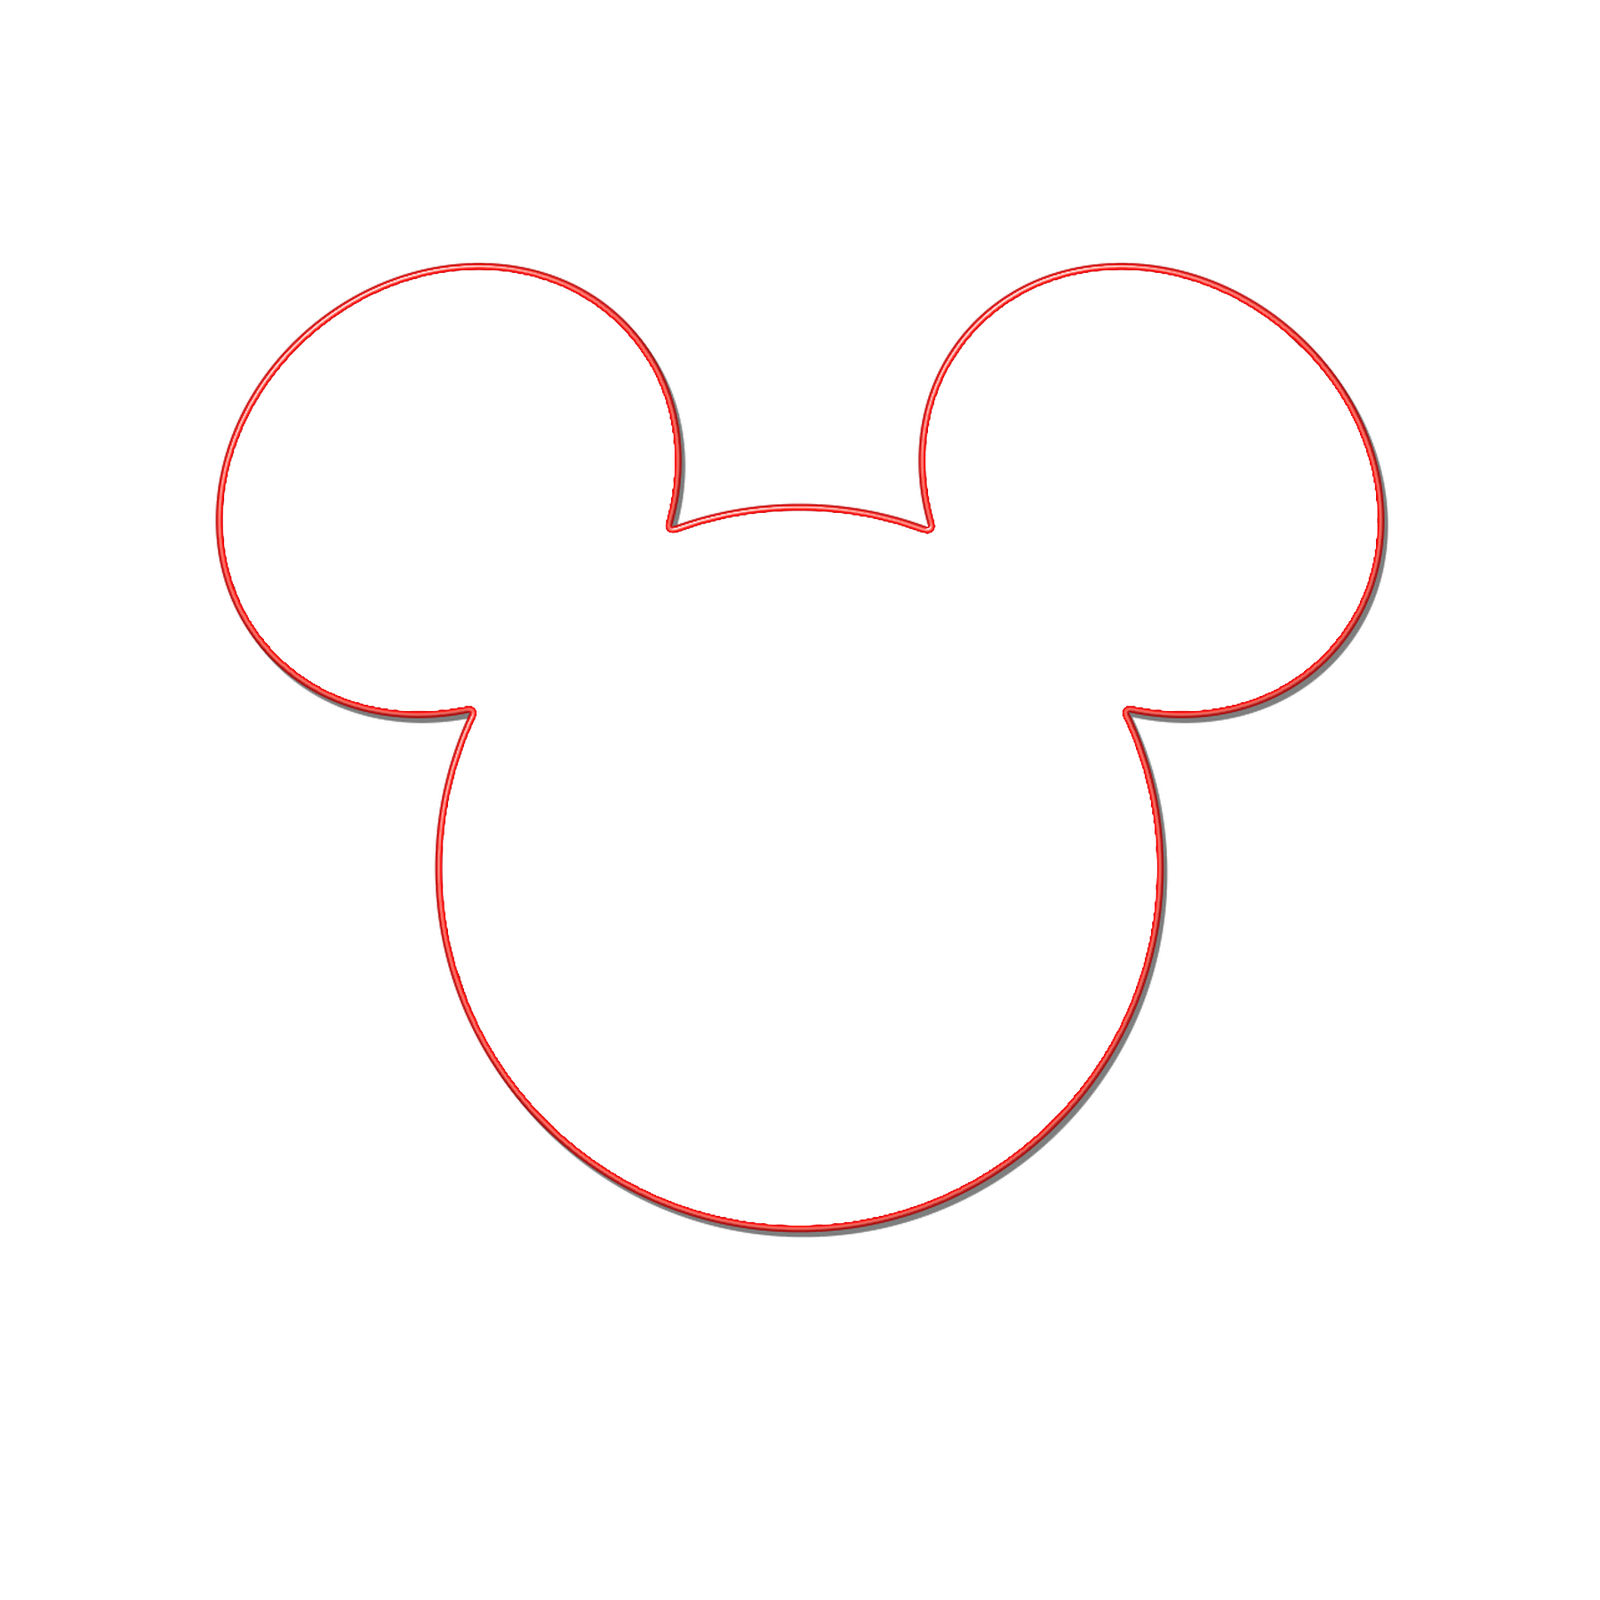 36 mickey mouse ears clip art   Free cliparts that you can download to    Black Mickey Mouse Head Clipart